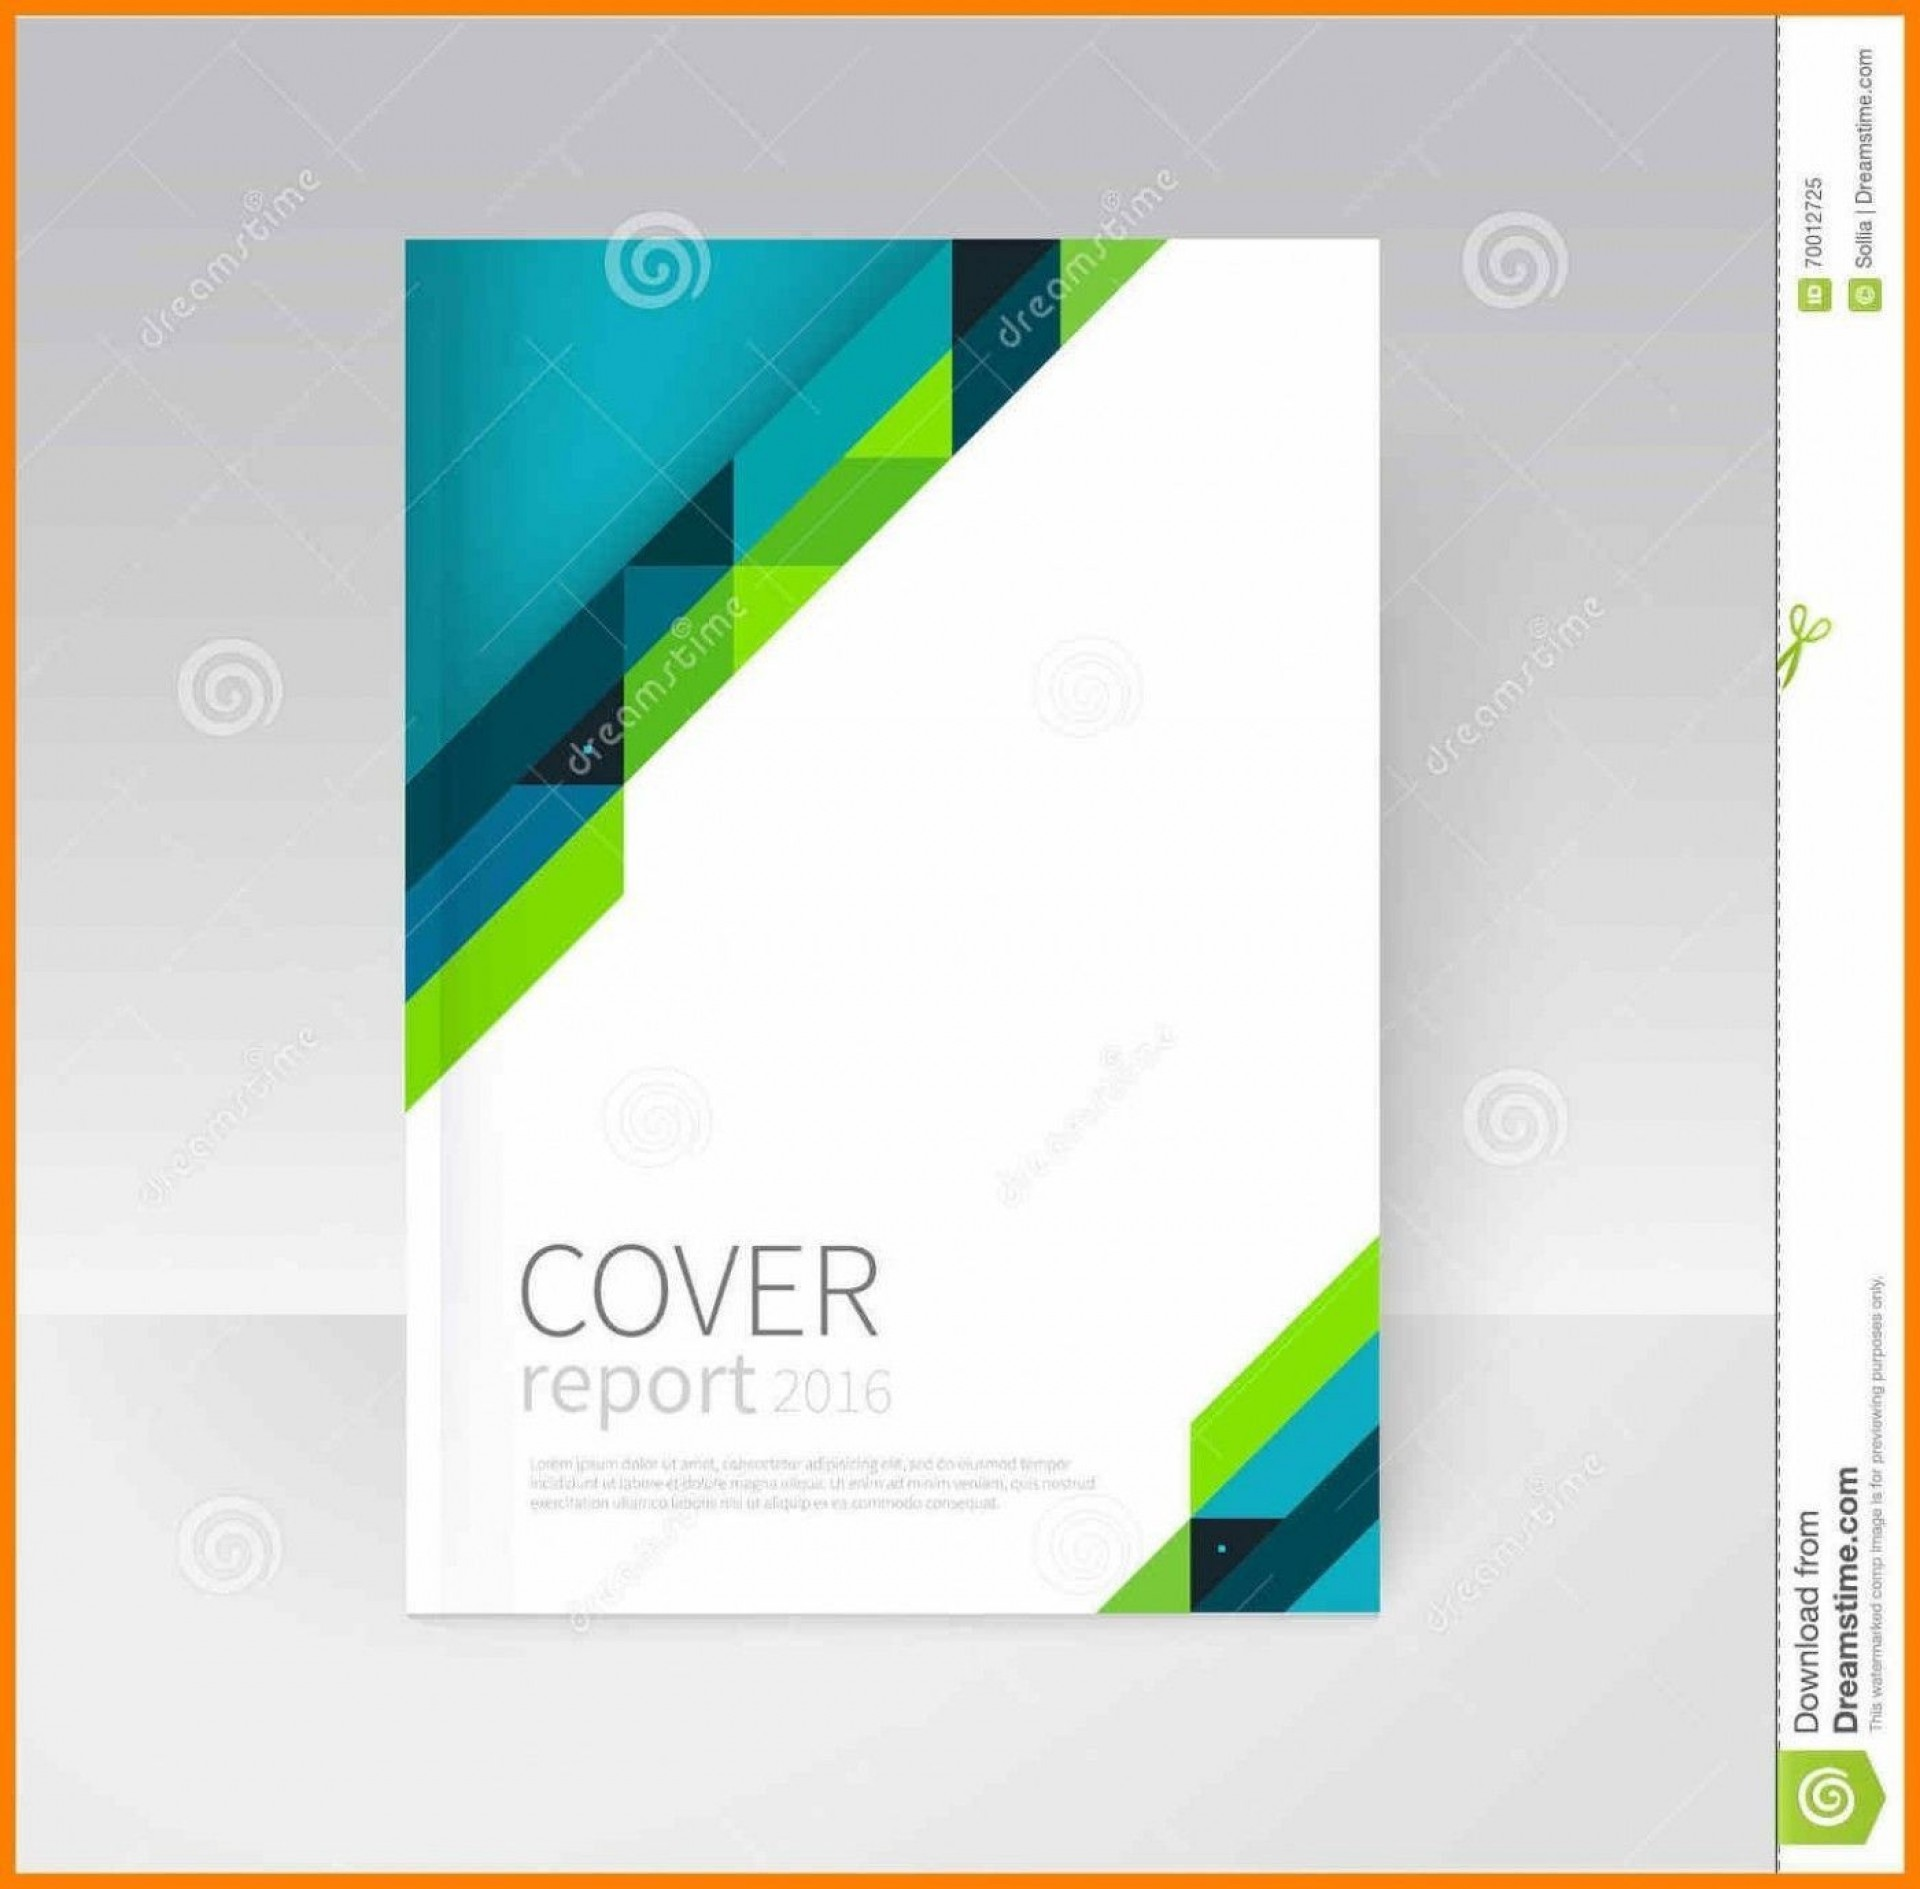 008 Beautiful Free Download Annual Report Cover Design Template Picture  Page In Word1920